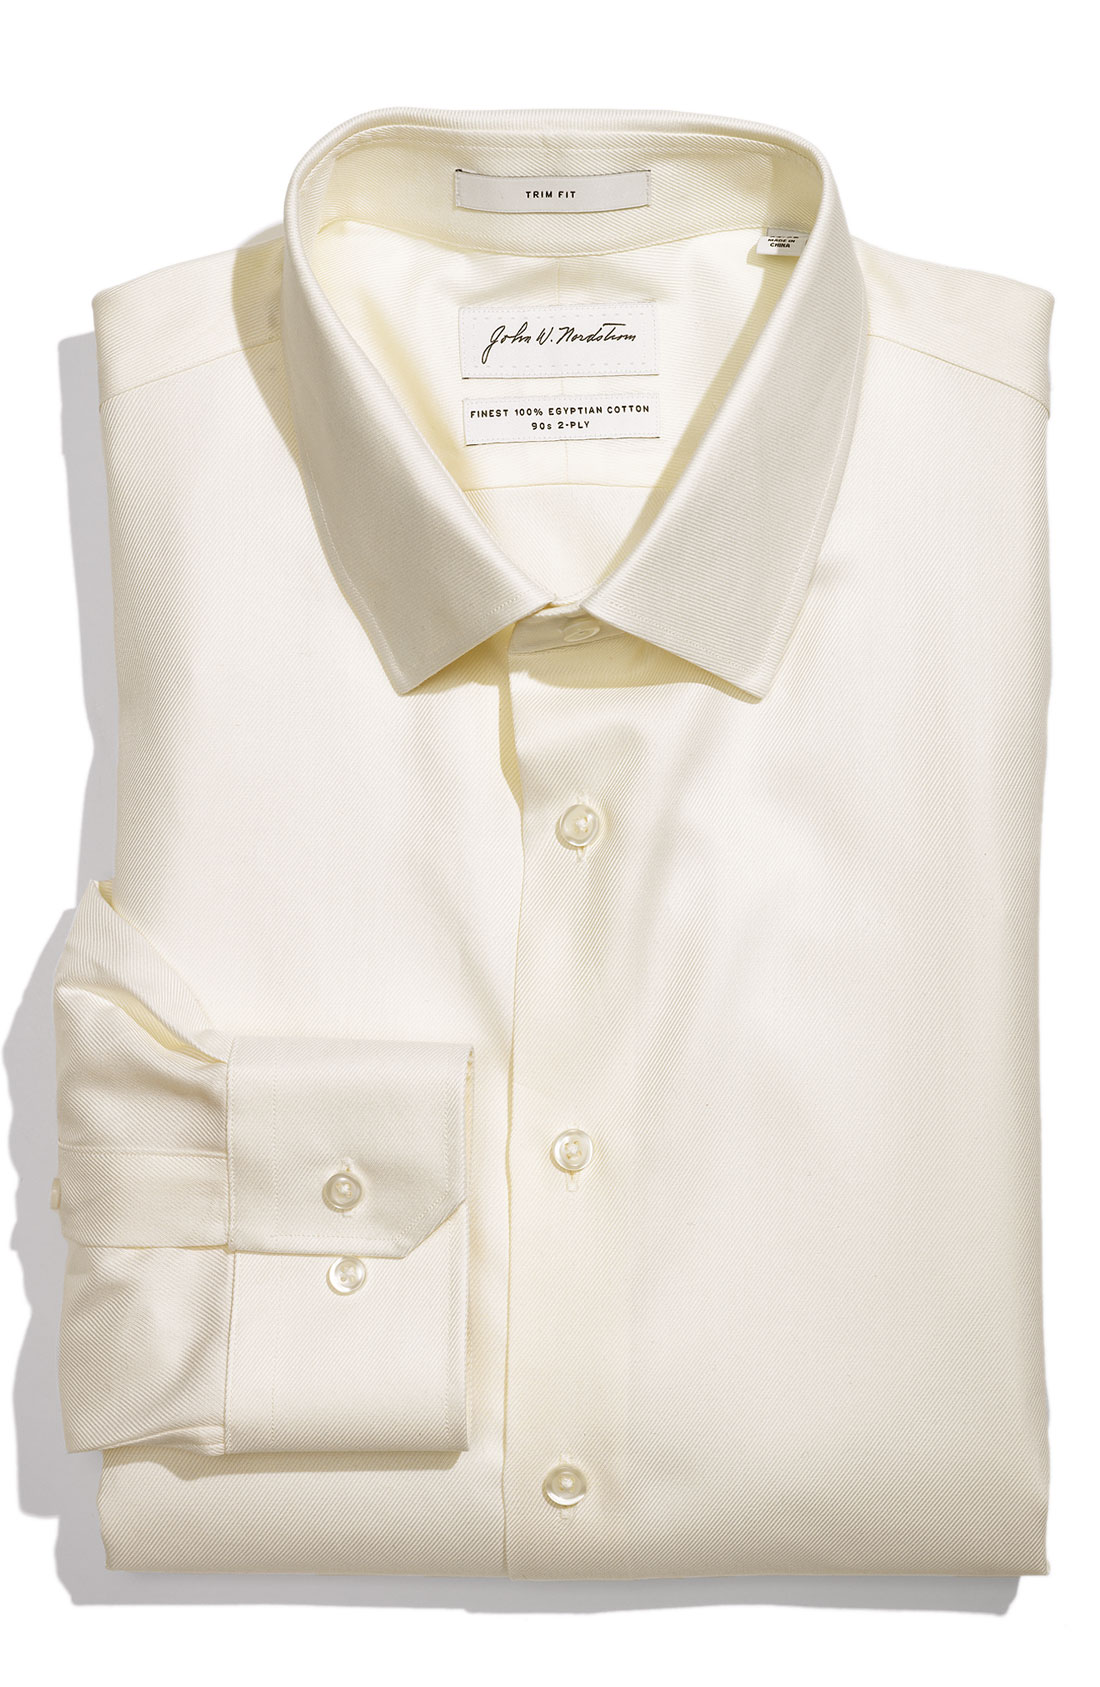 John w nordstrom trim fit egyptian cotton dress shirt in for Mens egyptian cotton dress shirts